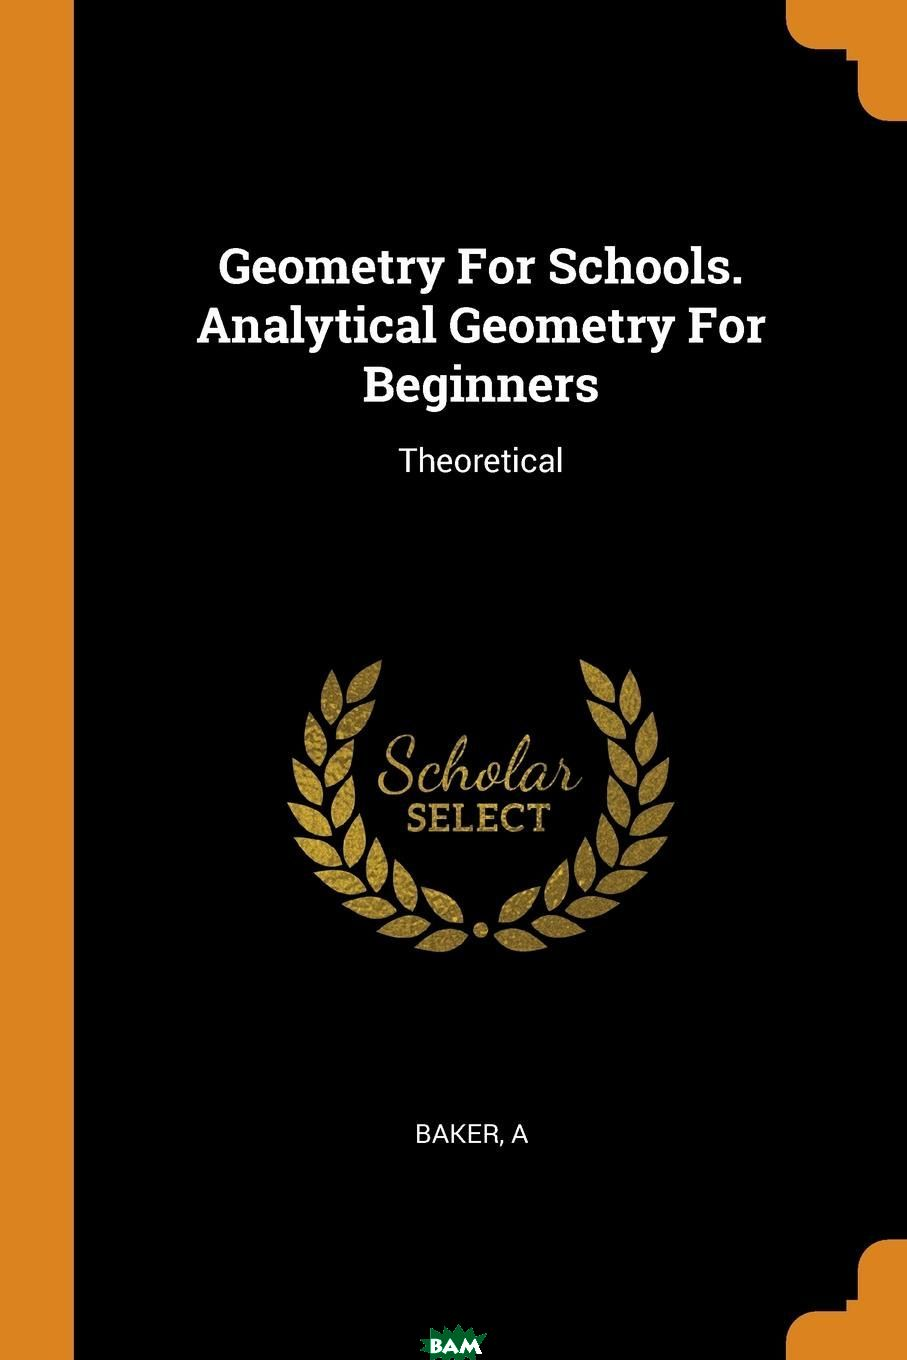 Geometry For Schools. Analytical Geometry For Beginners. Theoretical, Baker A, 9780353100930  - купить со скидкой